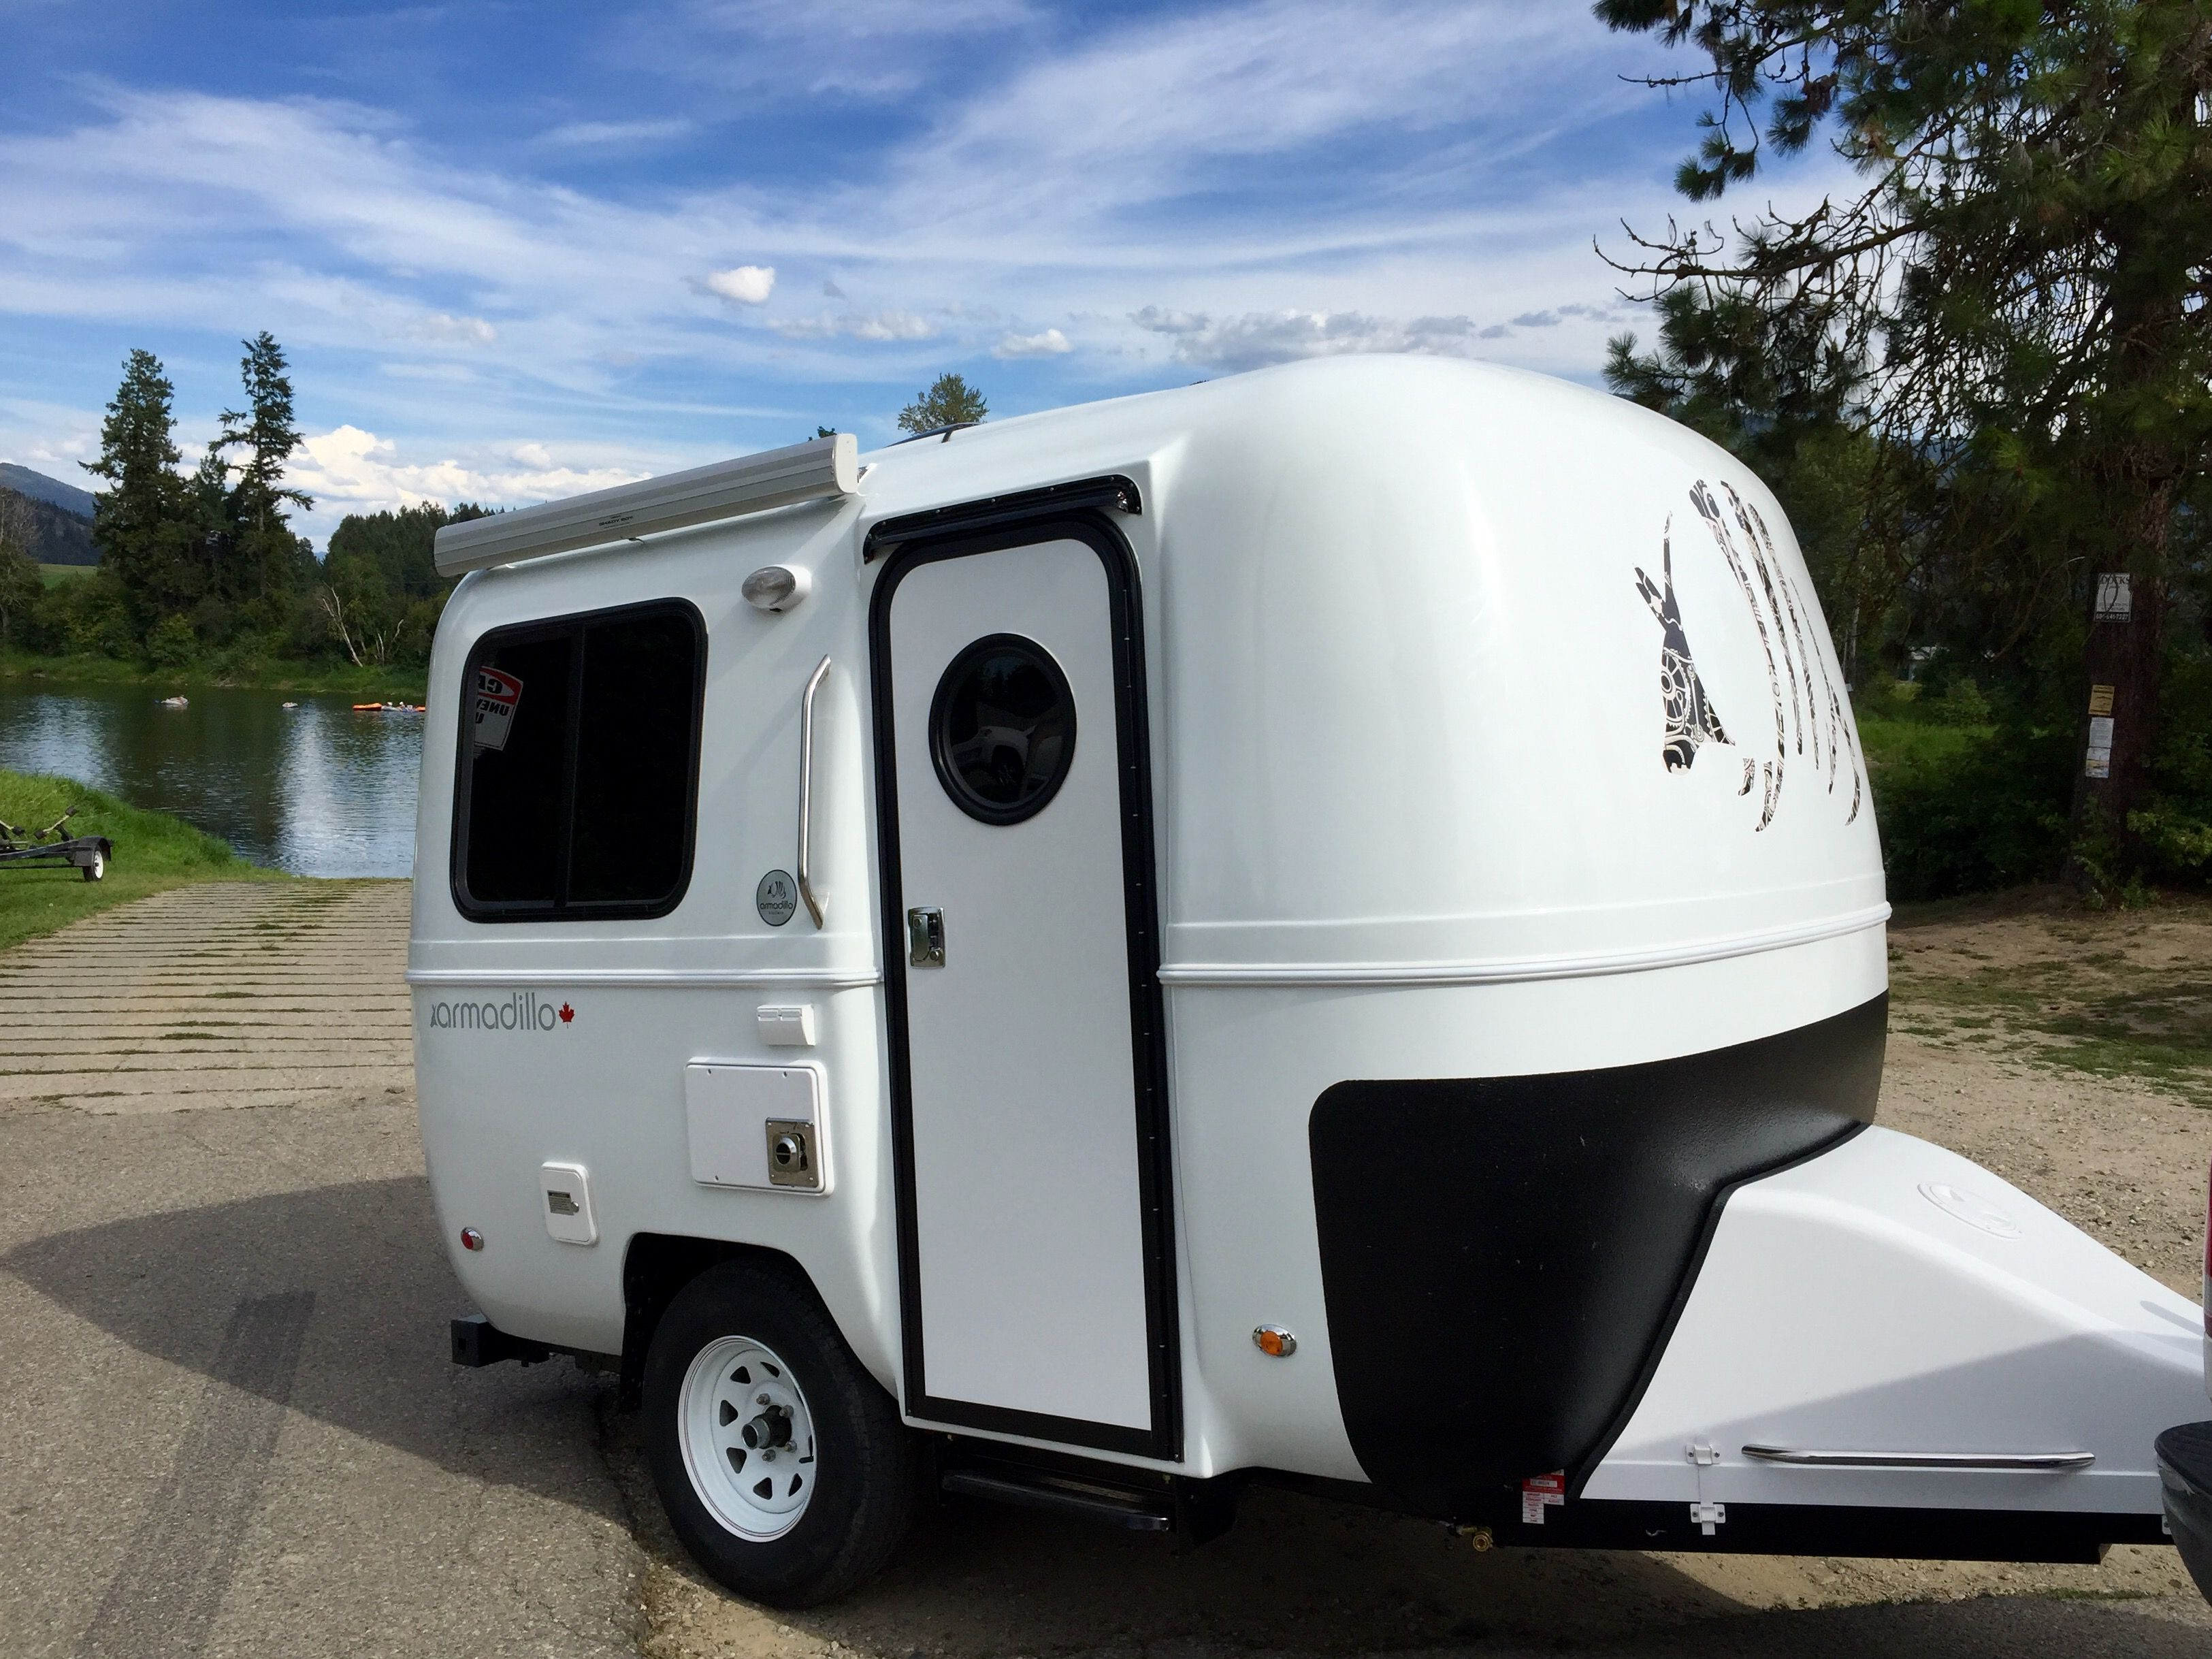 Canadian Manufacturers Of Small Lightweight 13 5ft Fiberglass Trailers Bui Lightweight Travel Trailers Small Lightweight Travel Trailers Small Travel Trailers